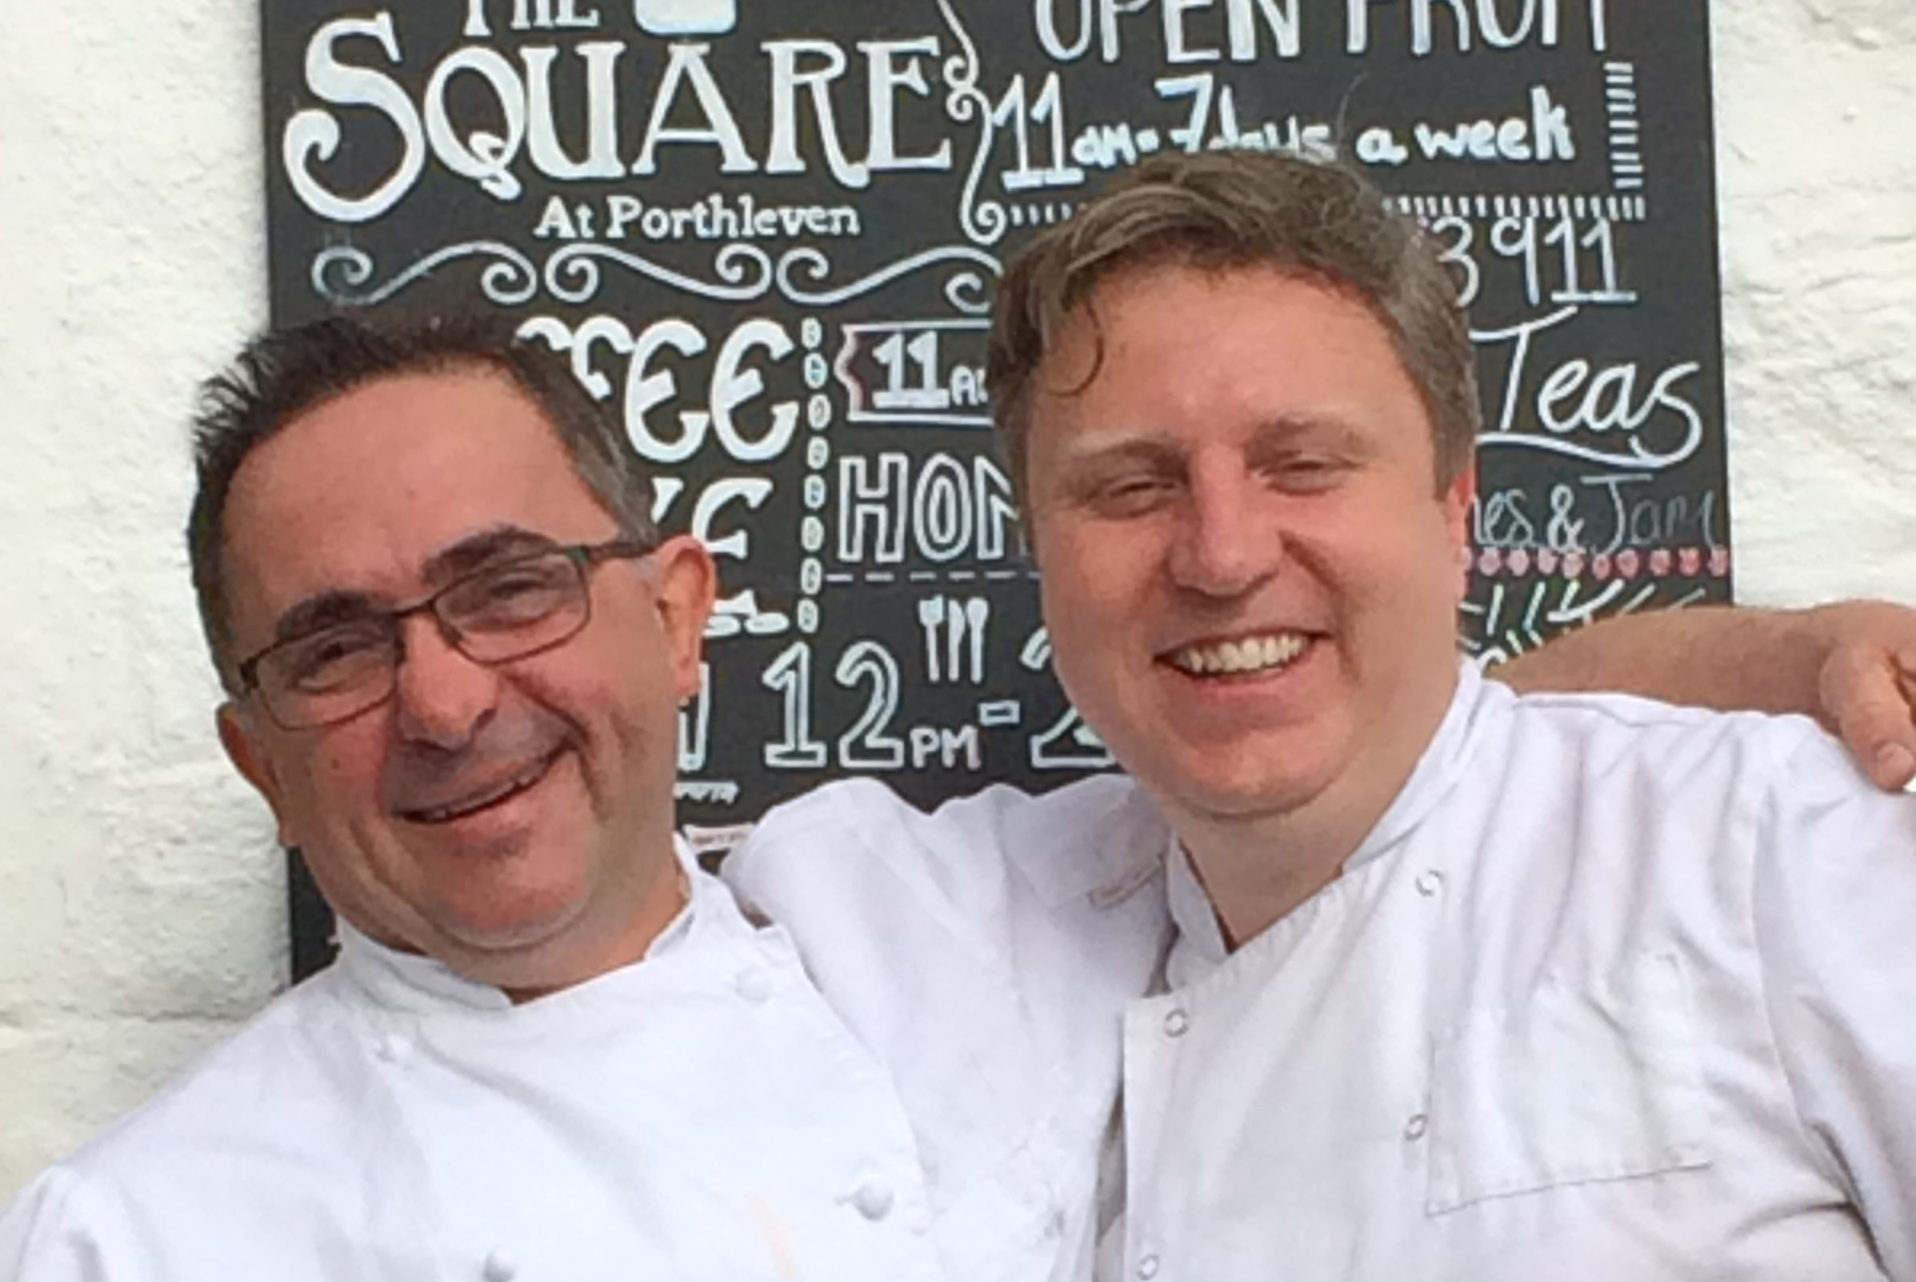 Chefs Stew Eddy and Bryok Williams from The Square, Porthleven